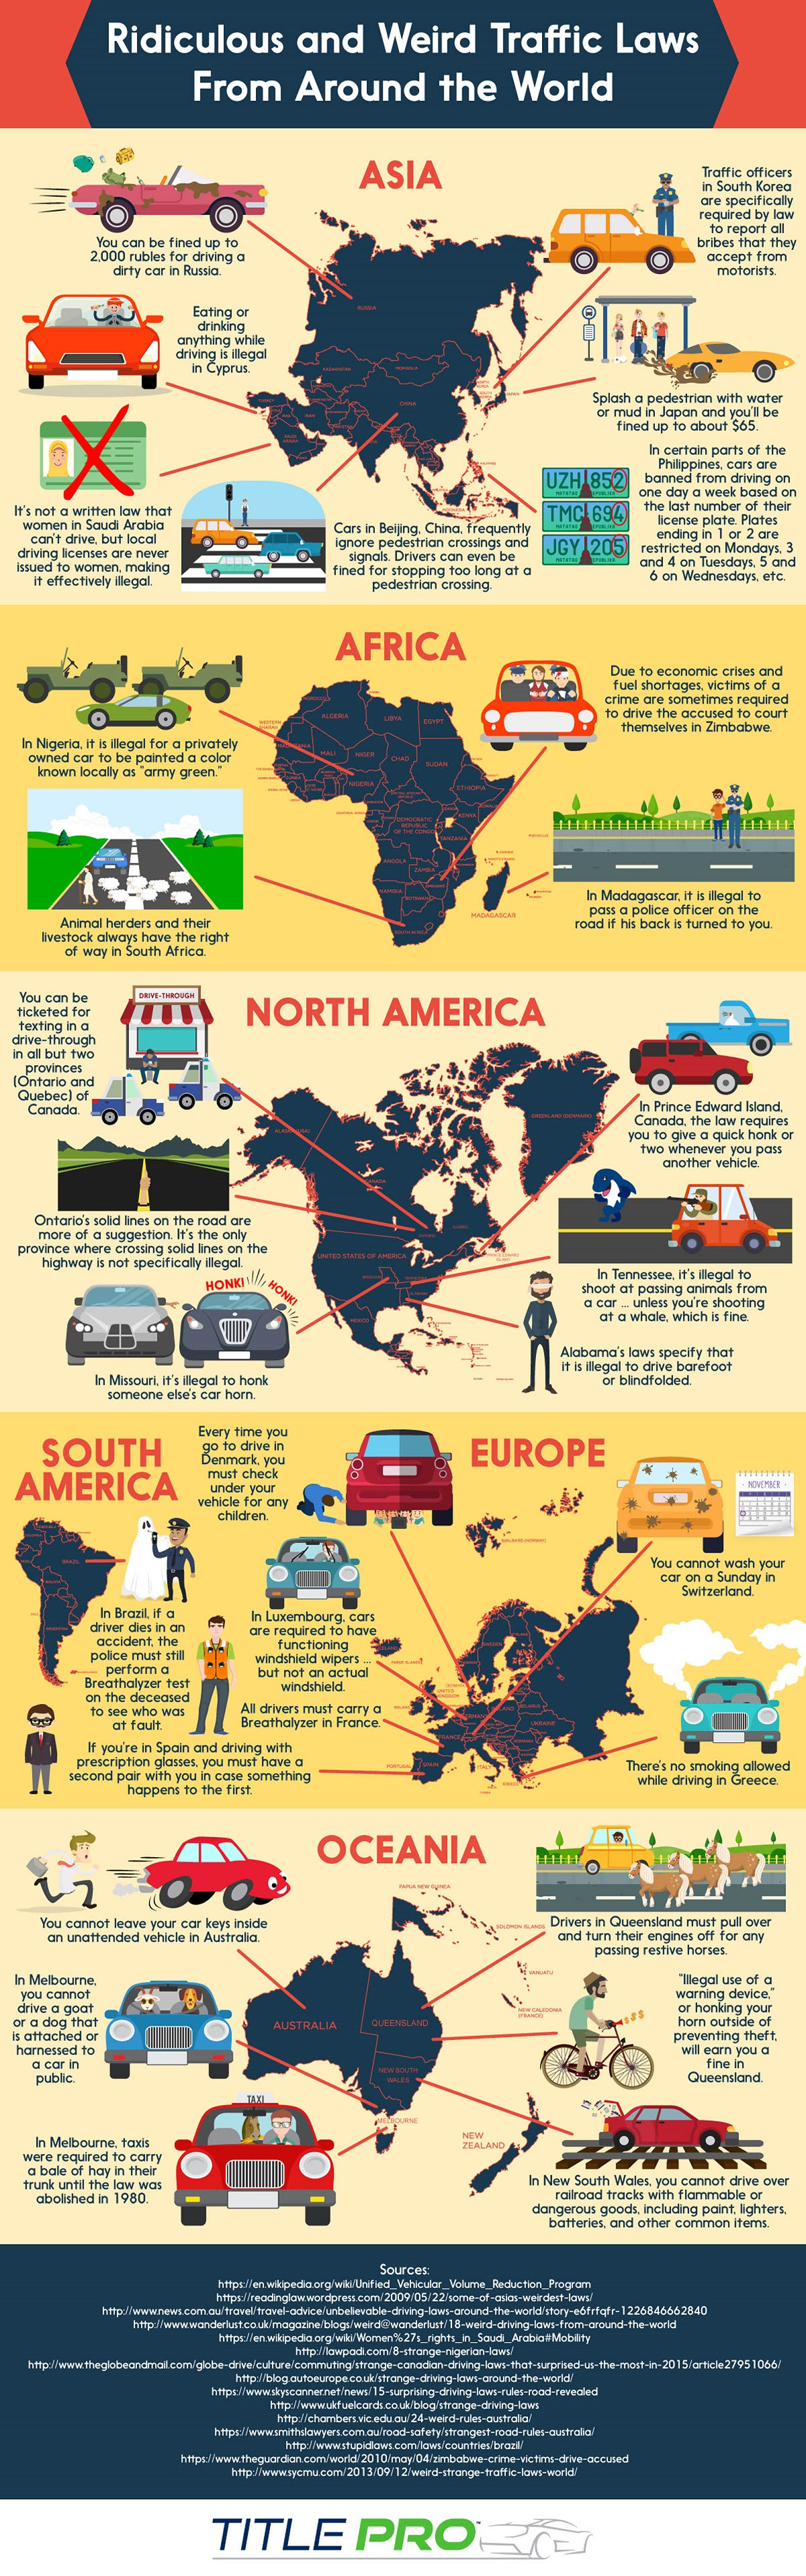 Ridiculous And Weird Traffic Laws Around The World